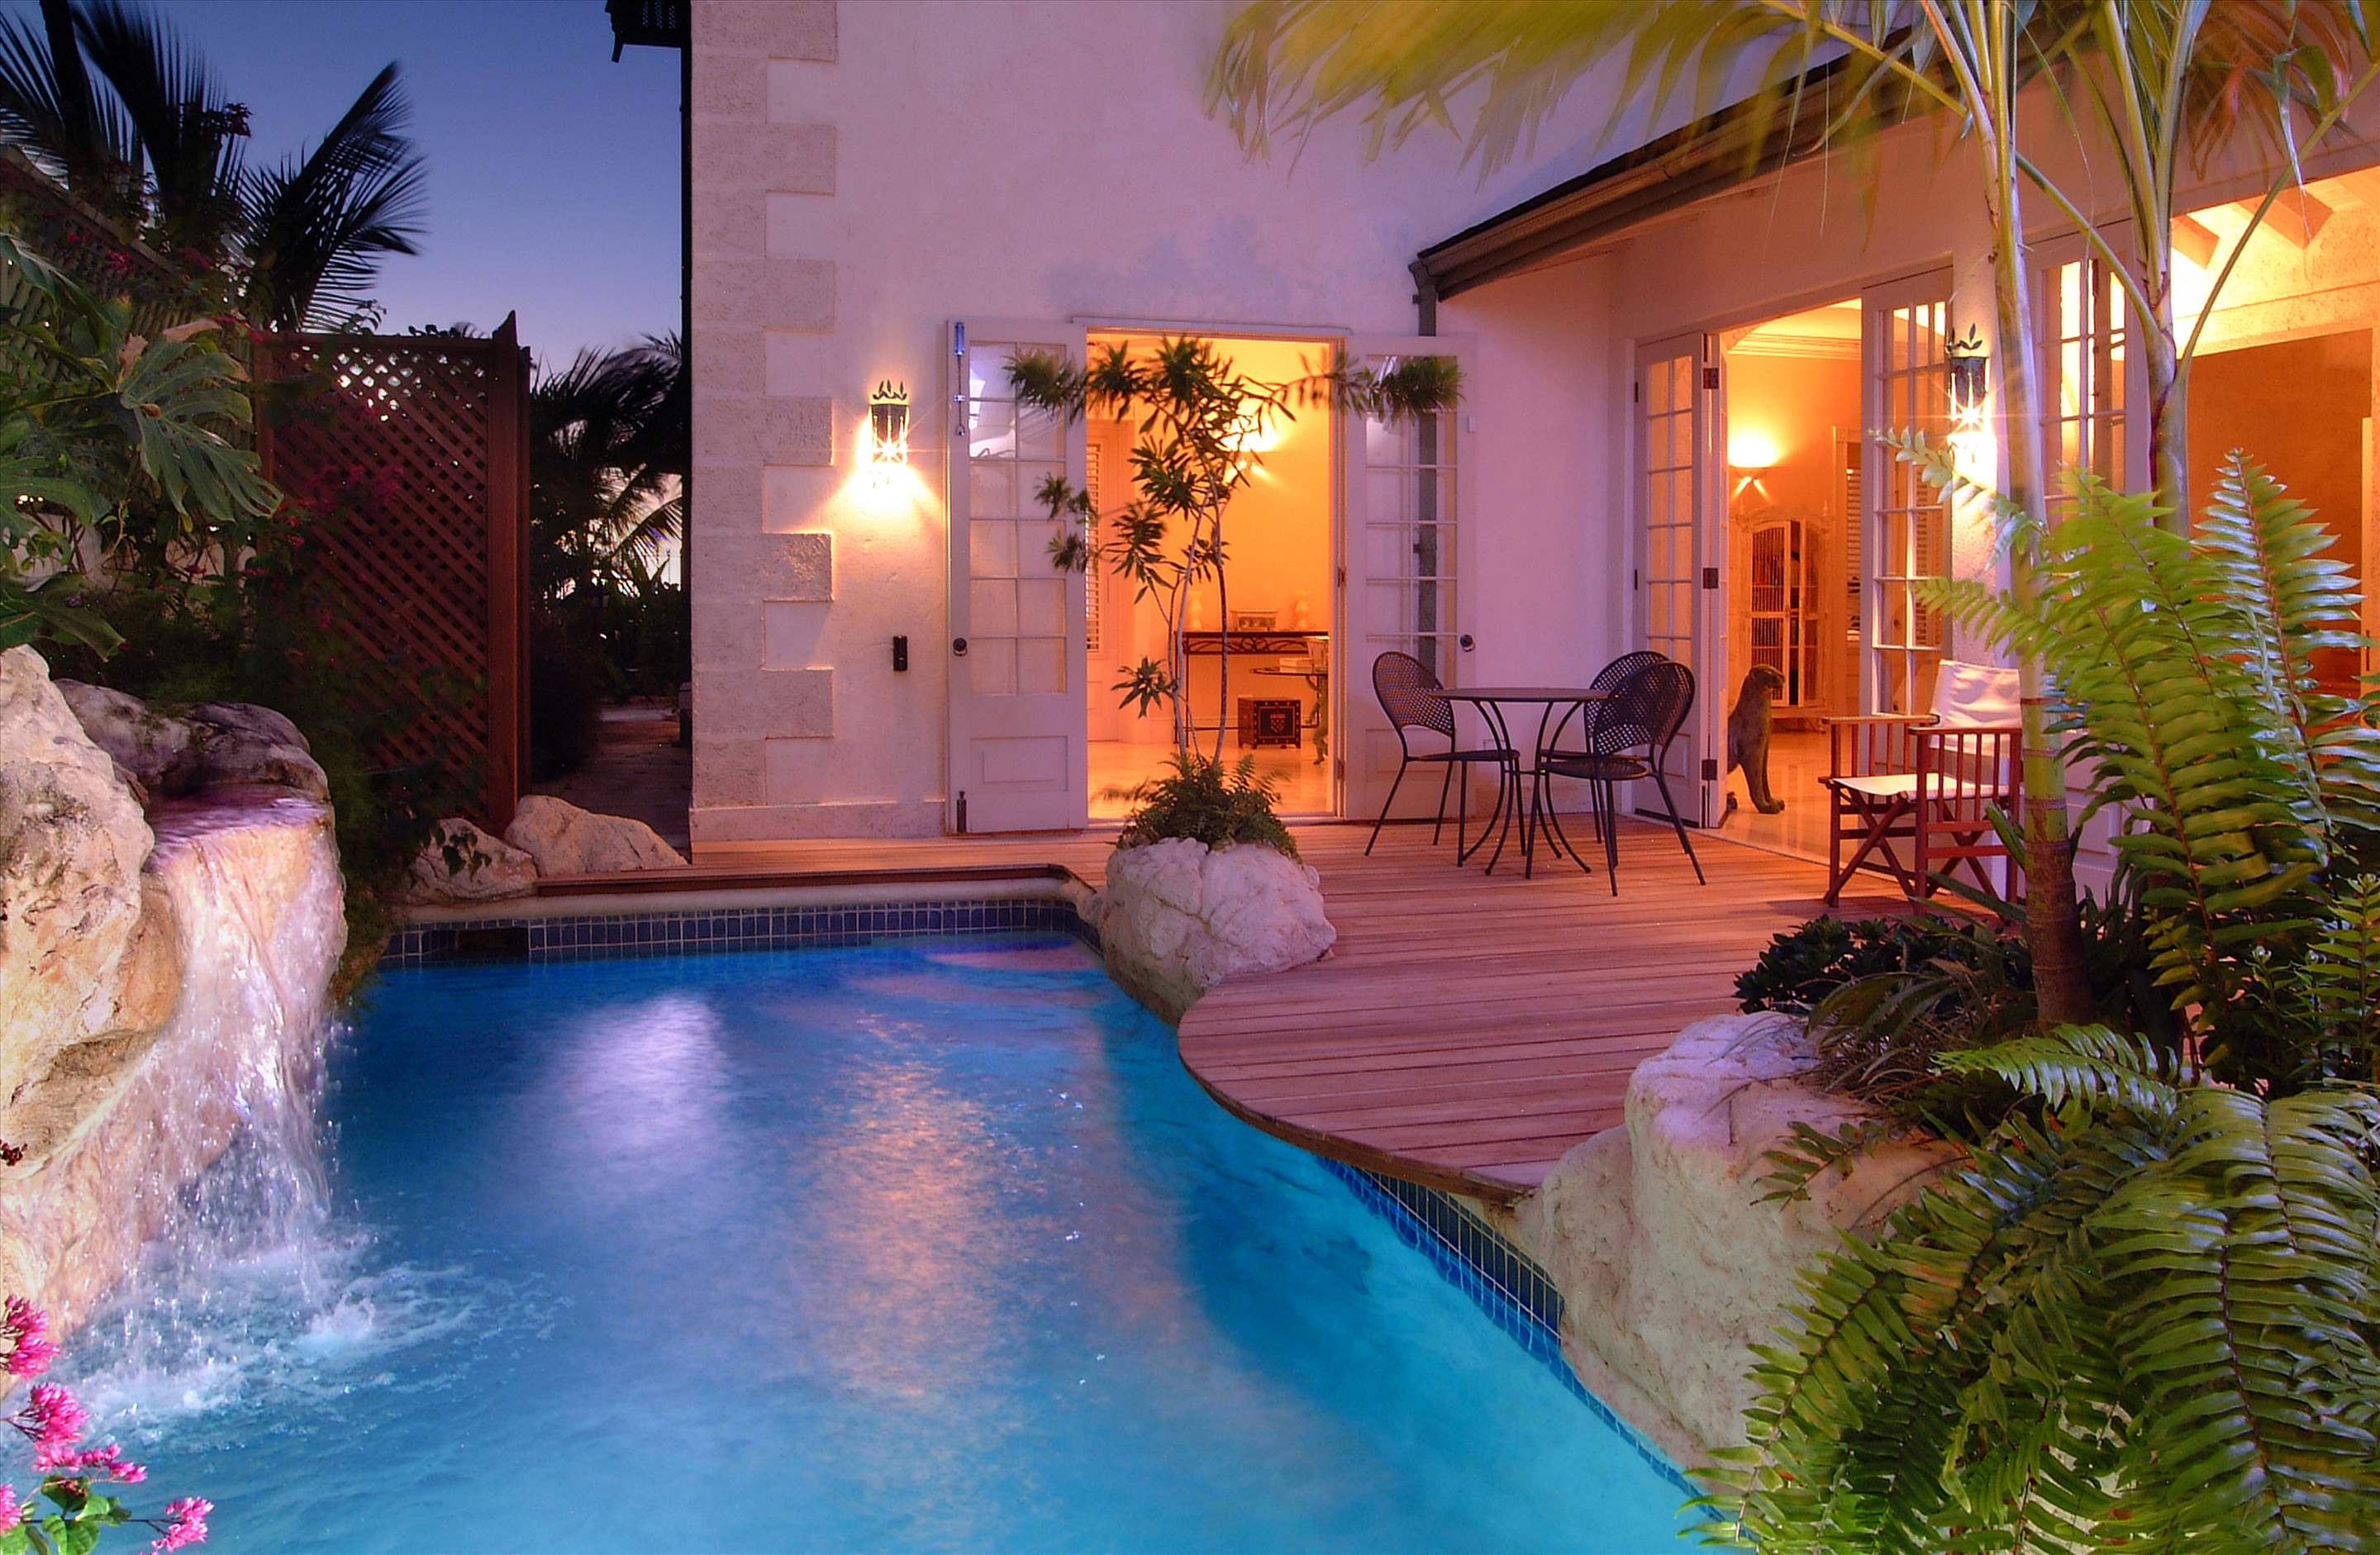 Caprice, 4 bedroom villa in St. James & West Coast, Barbados